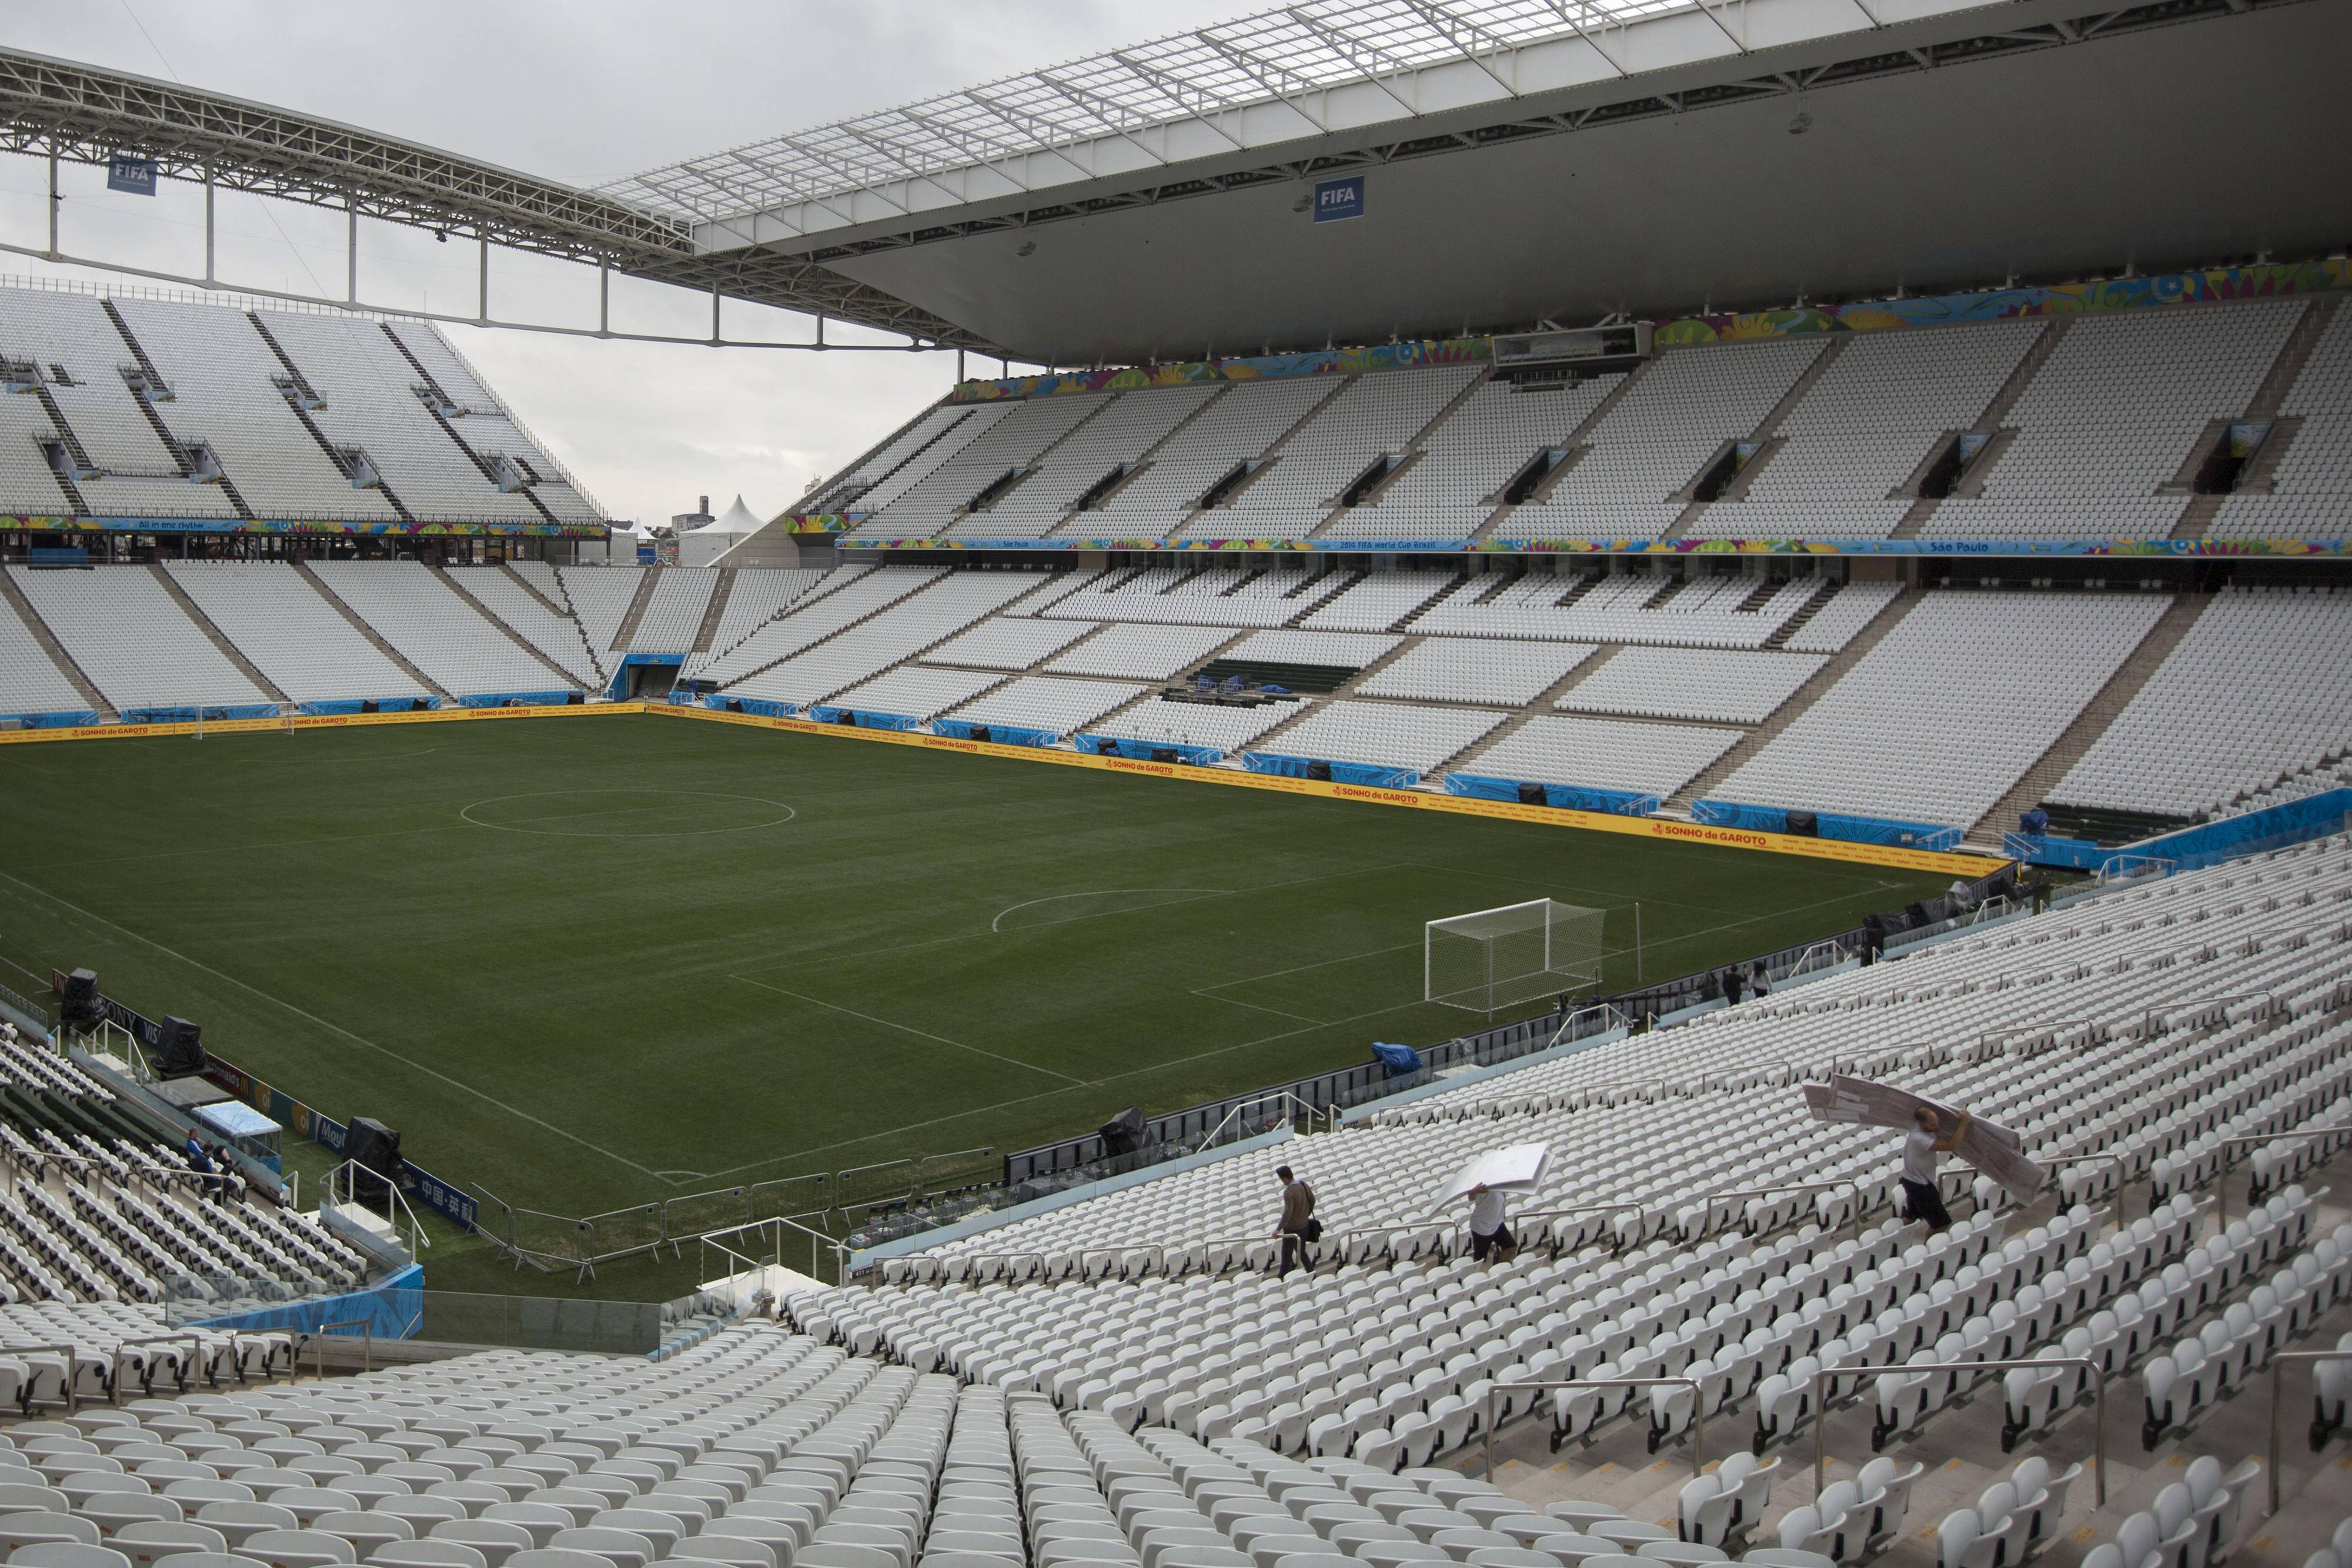 Final preparations are made one day before the opening World Cup soccer match in Itaquerao Stadium in Sao Paulo, Brazil, Wednesday, June 11, 2014. If Brazil wins the opening game, the fact that Itaquerao stadium isn't even fully finished yet will quickly be forgotten.